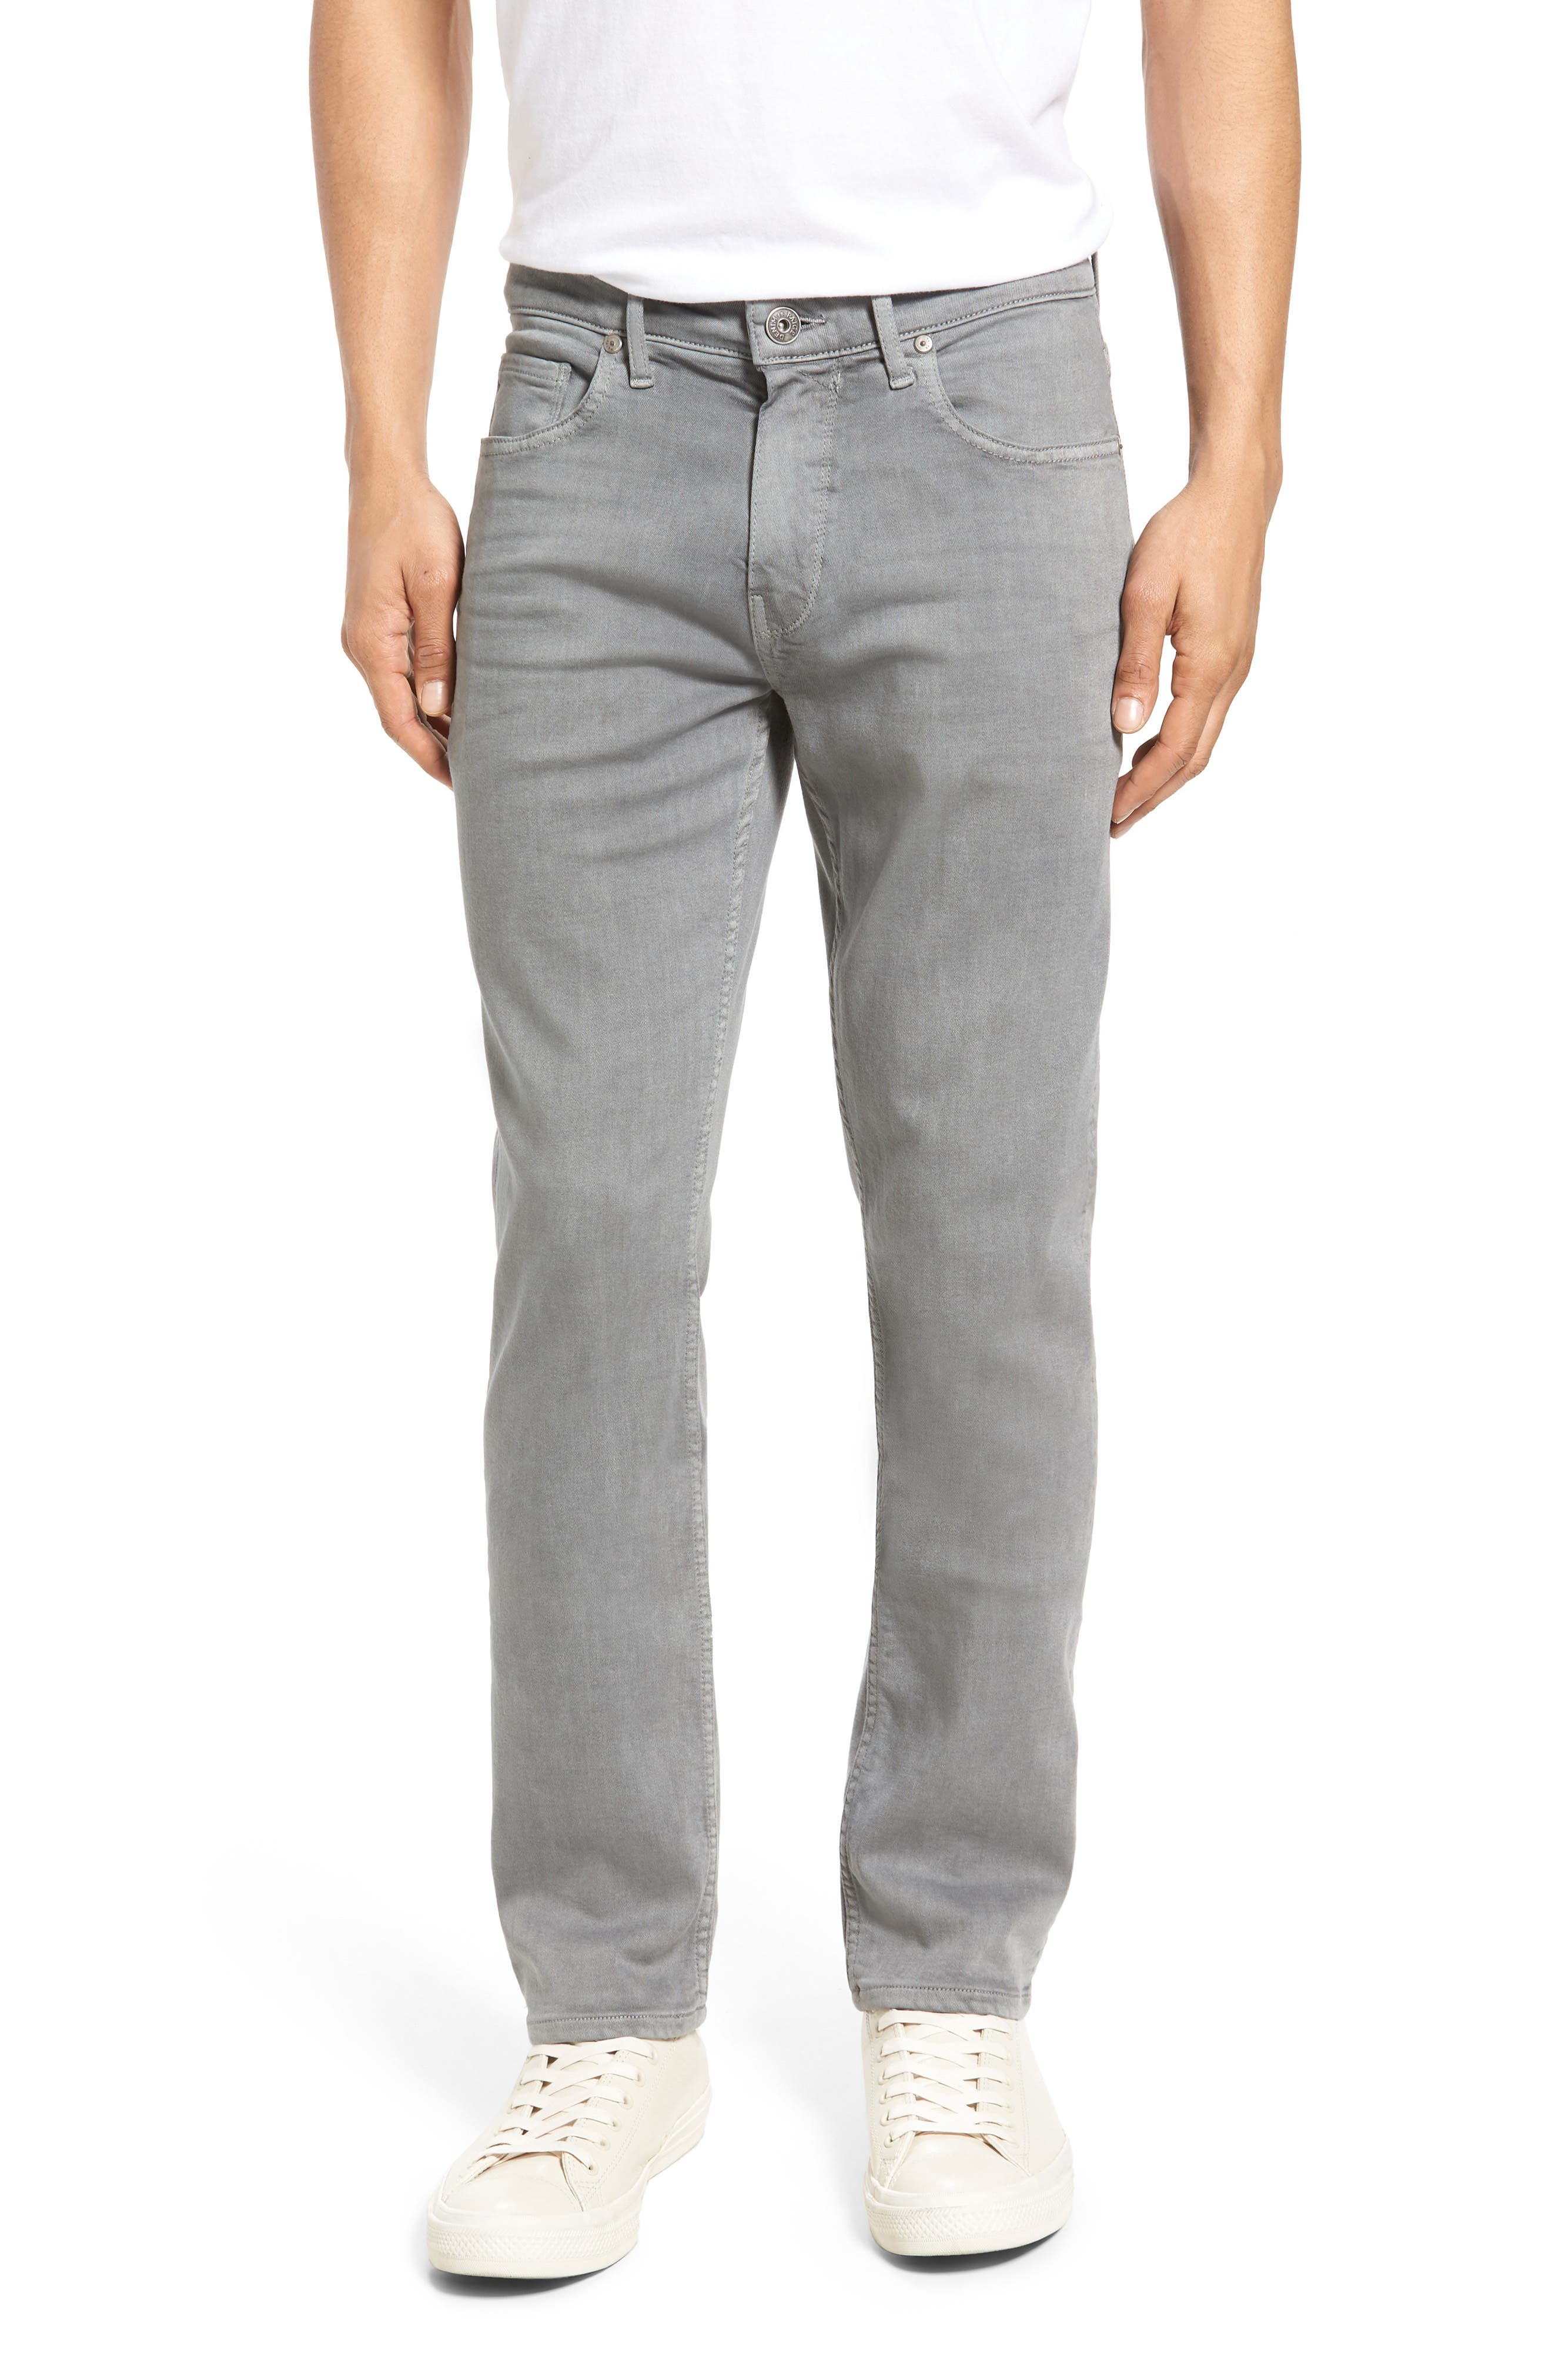 Transcend - Lennox Slim Fit Jeans,                         Main,                         color, 020